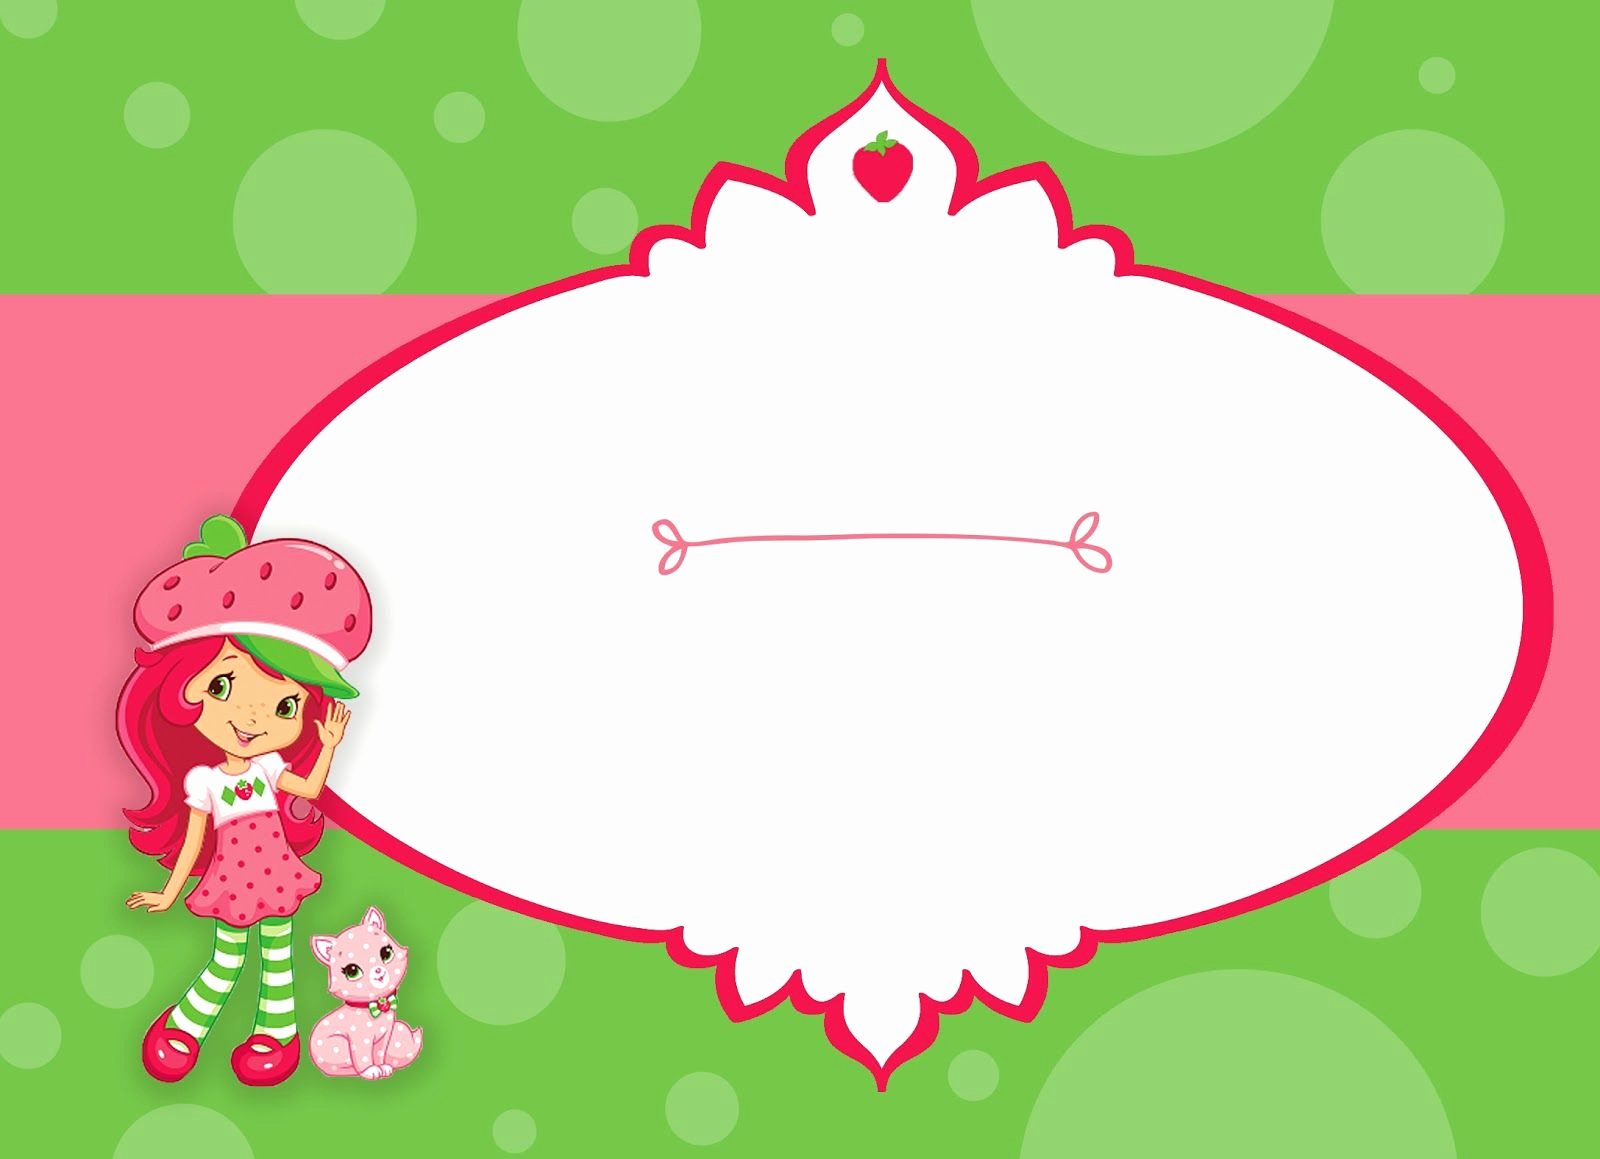 Strawberry Shortcake Invitation Templates Elegant Free Strawberry Shortcake Birthday Party Printable